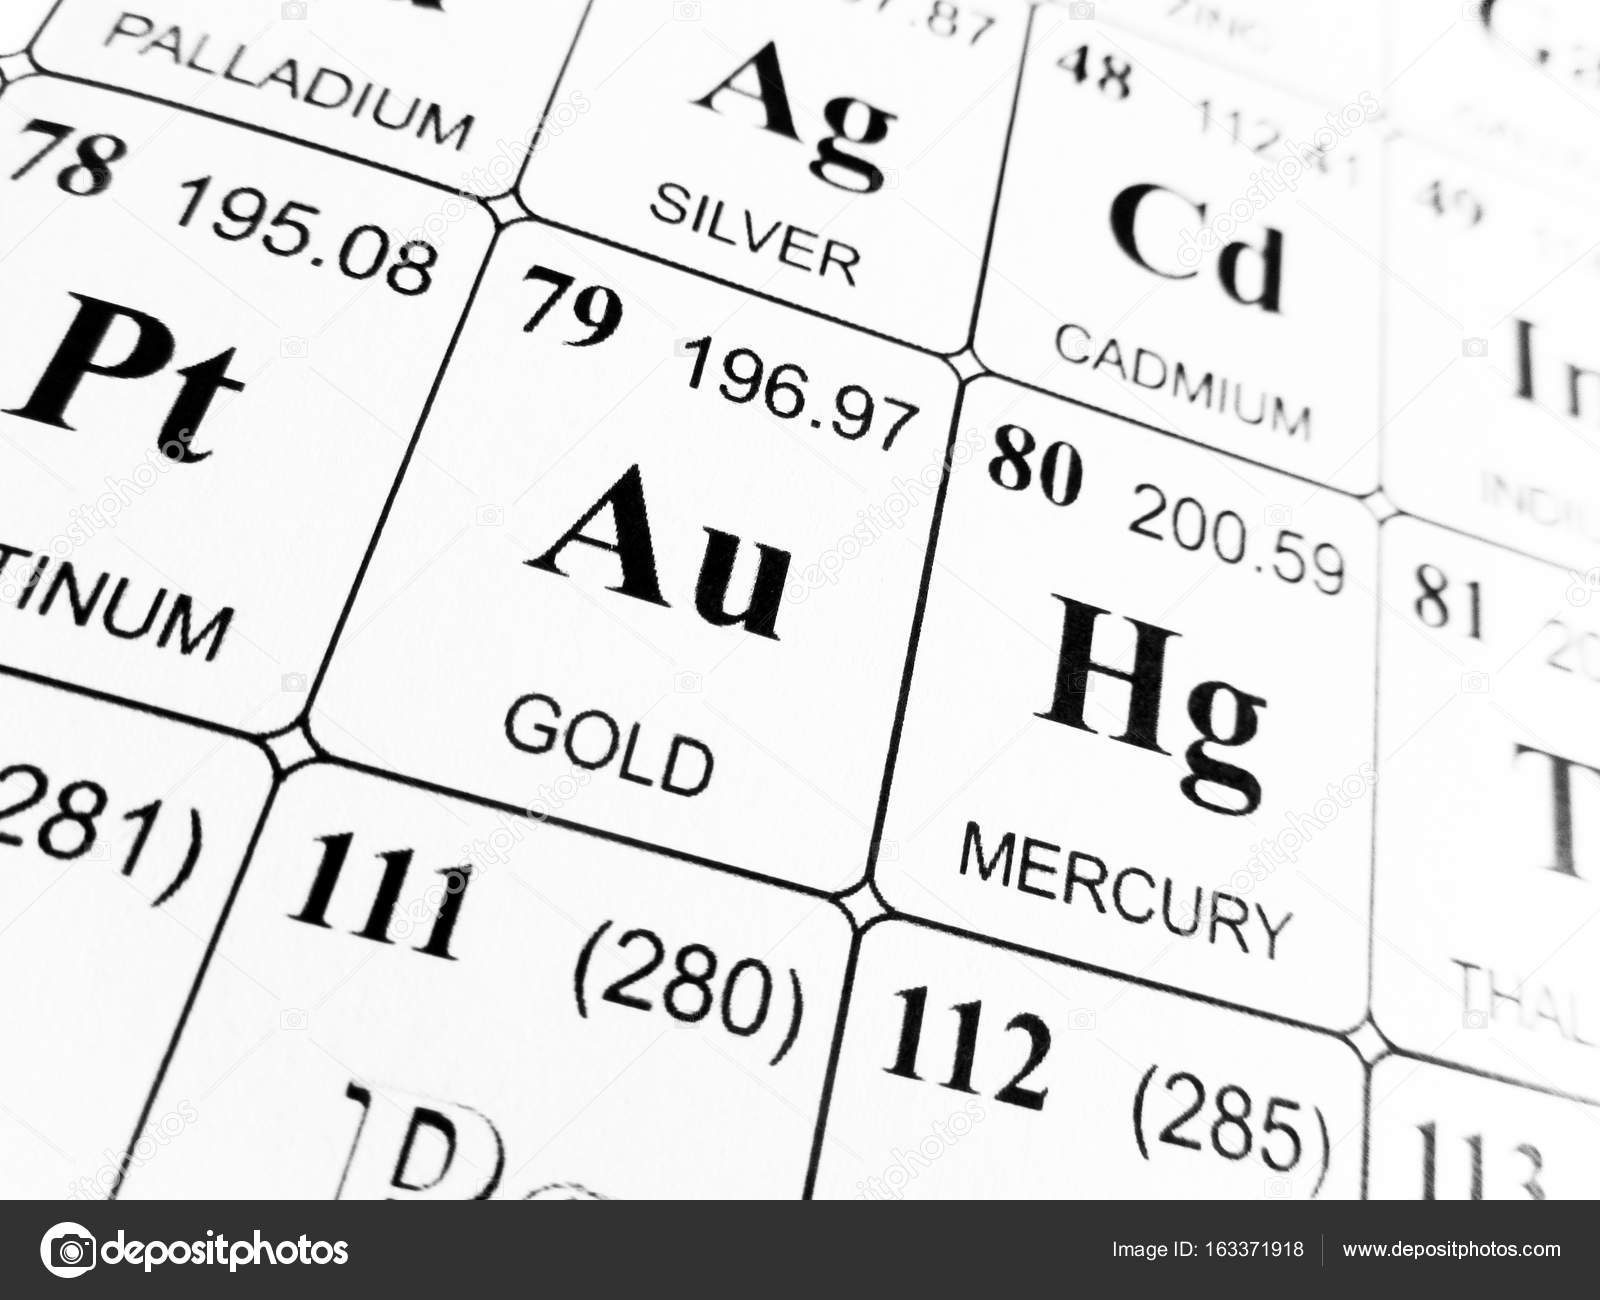 Gold on the periodic table of the elements stock photo gold on the periodic table of the elements stock photo 163371918 urtaz Gallery